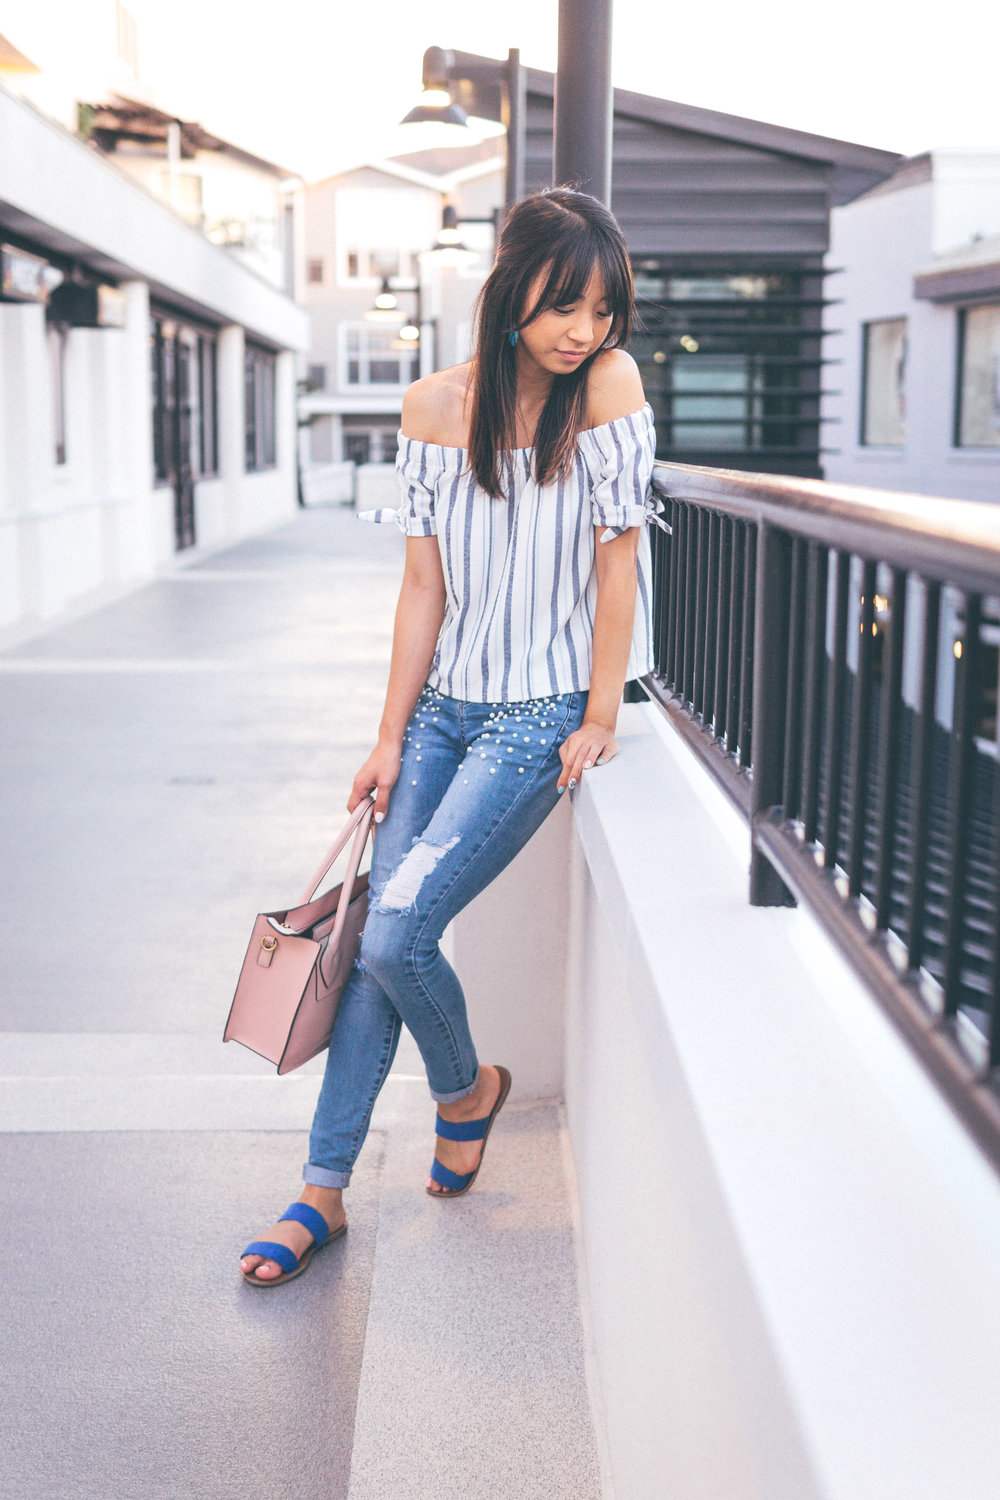 This Jenn Girl - Tampa Blogger - Pearlized Jeans 1